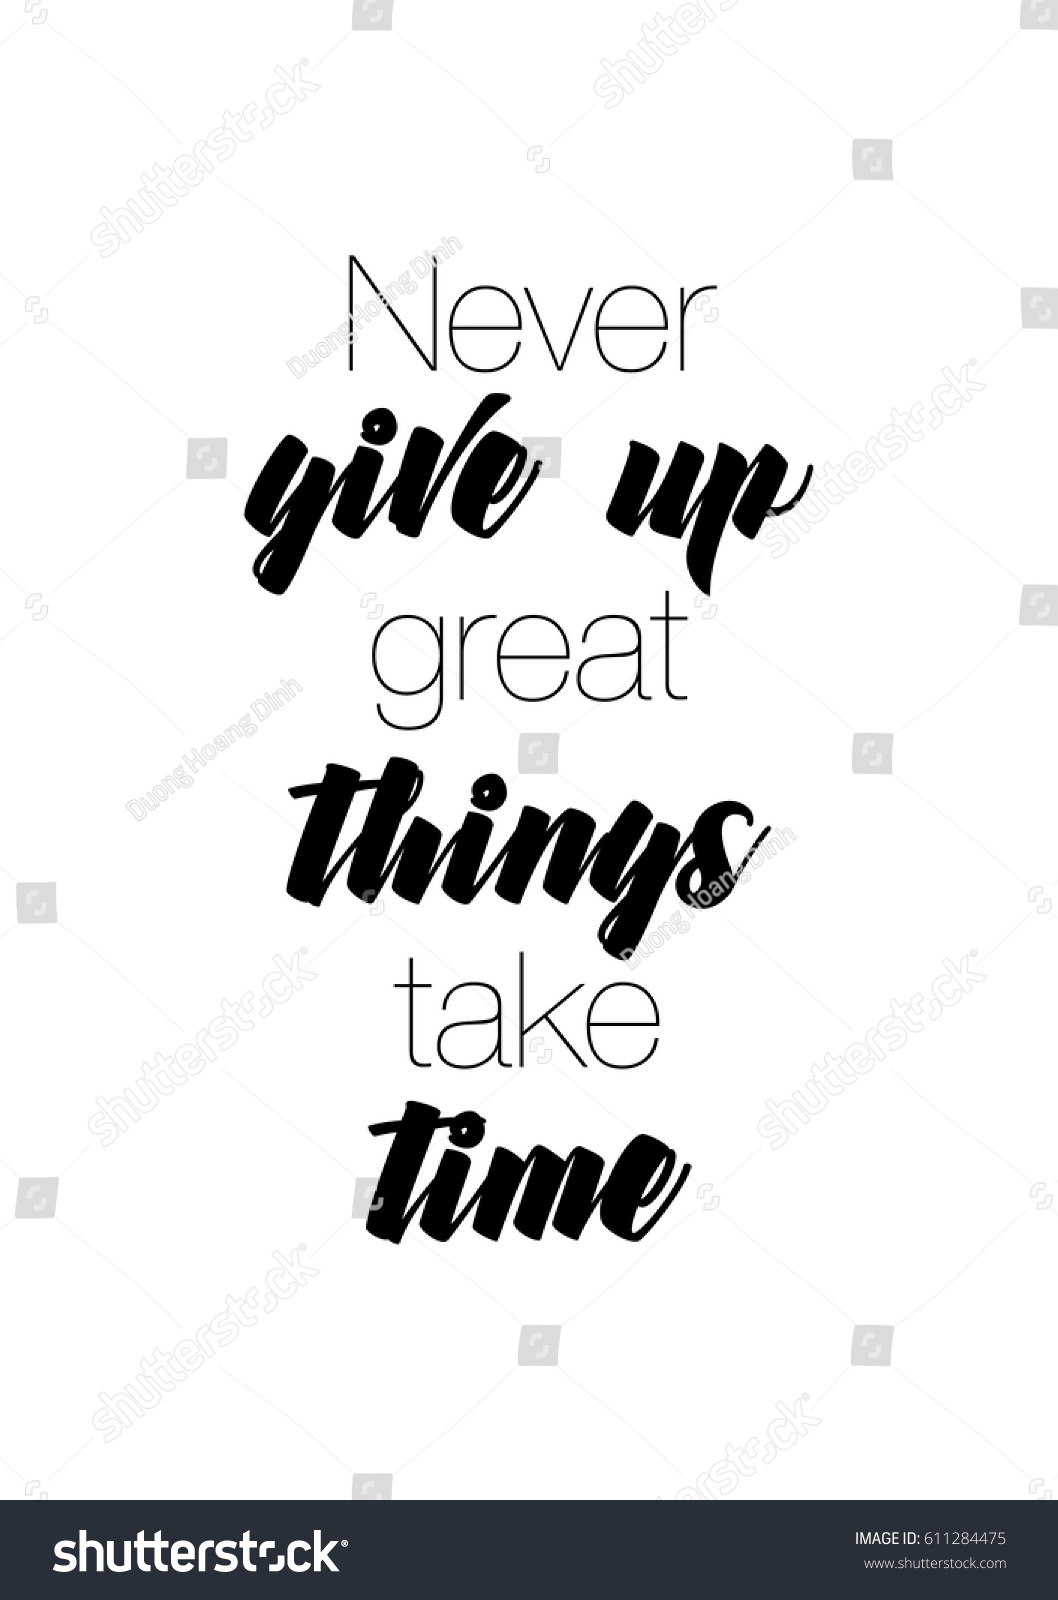 Never Give Up On Life Quotes Travel Life Style Inspiration Quotes Lettering Stock Vector